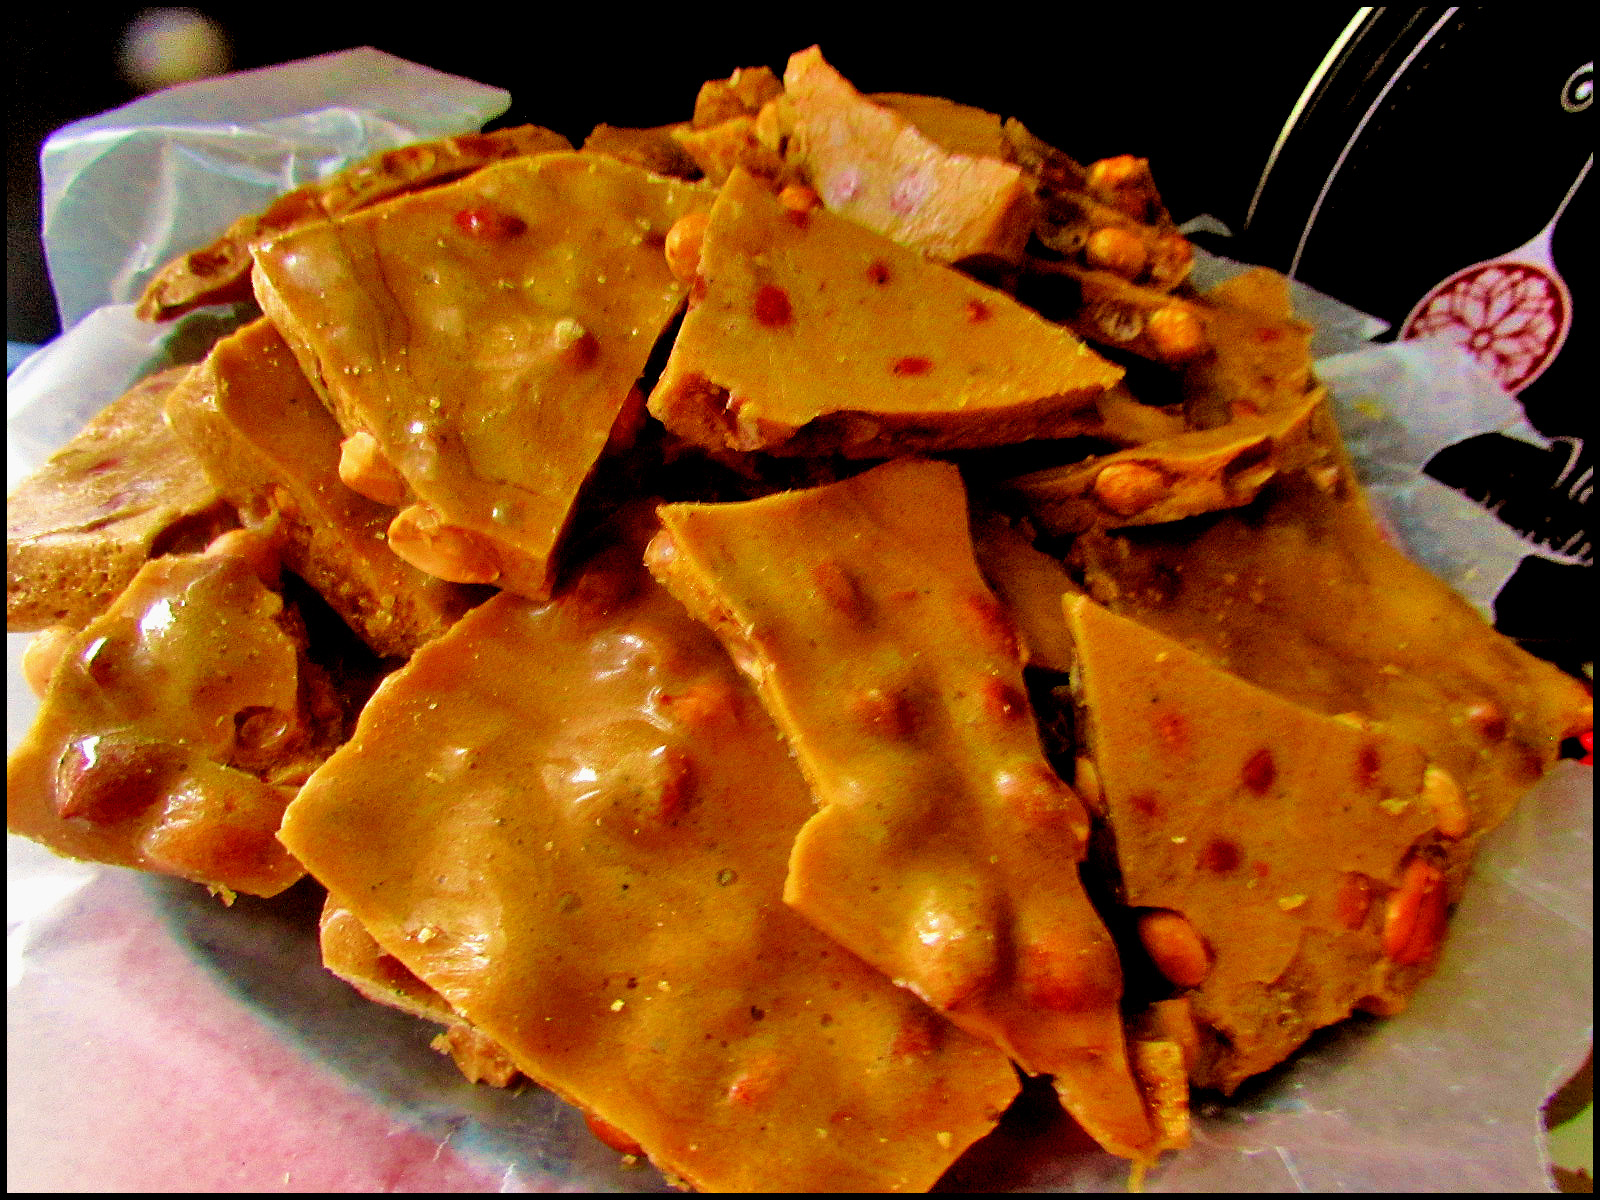 As you can see, the peanut brittle fortunately turned out pretty well ...